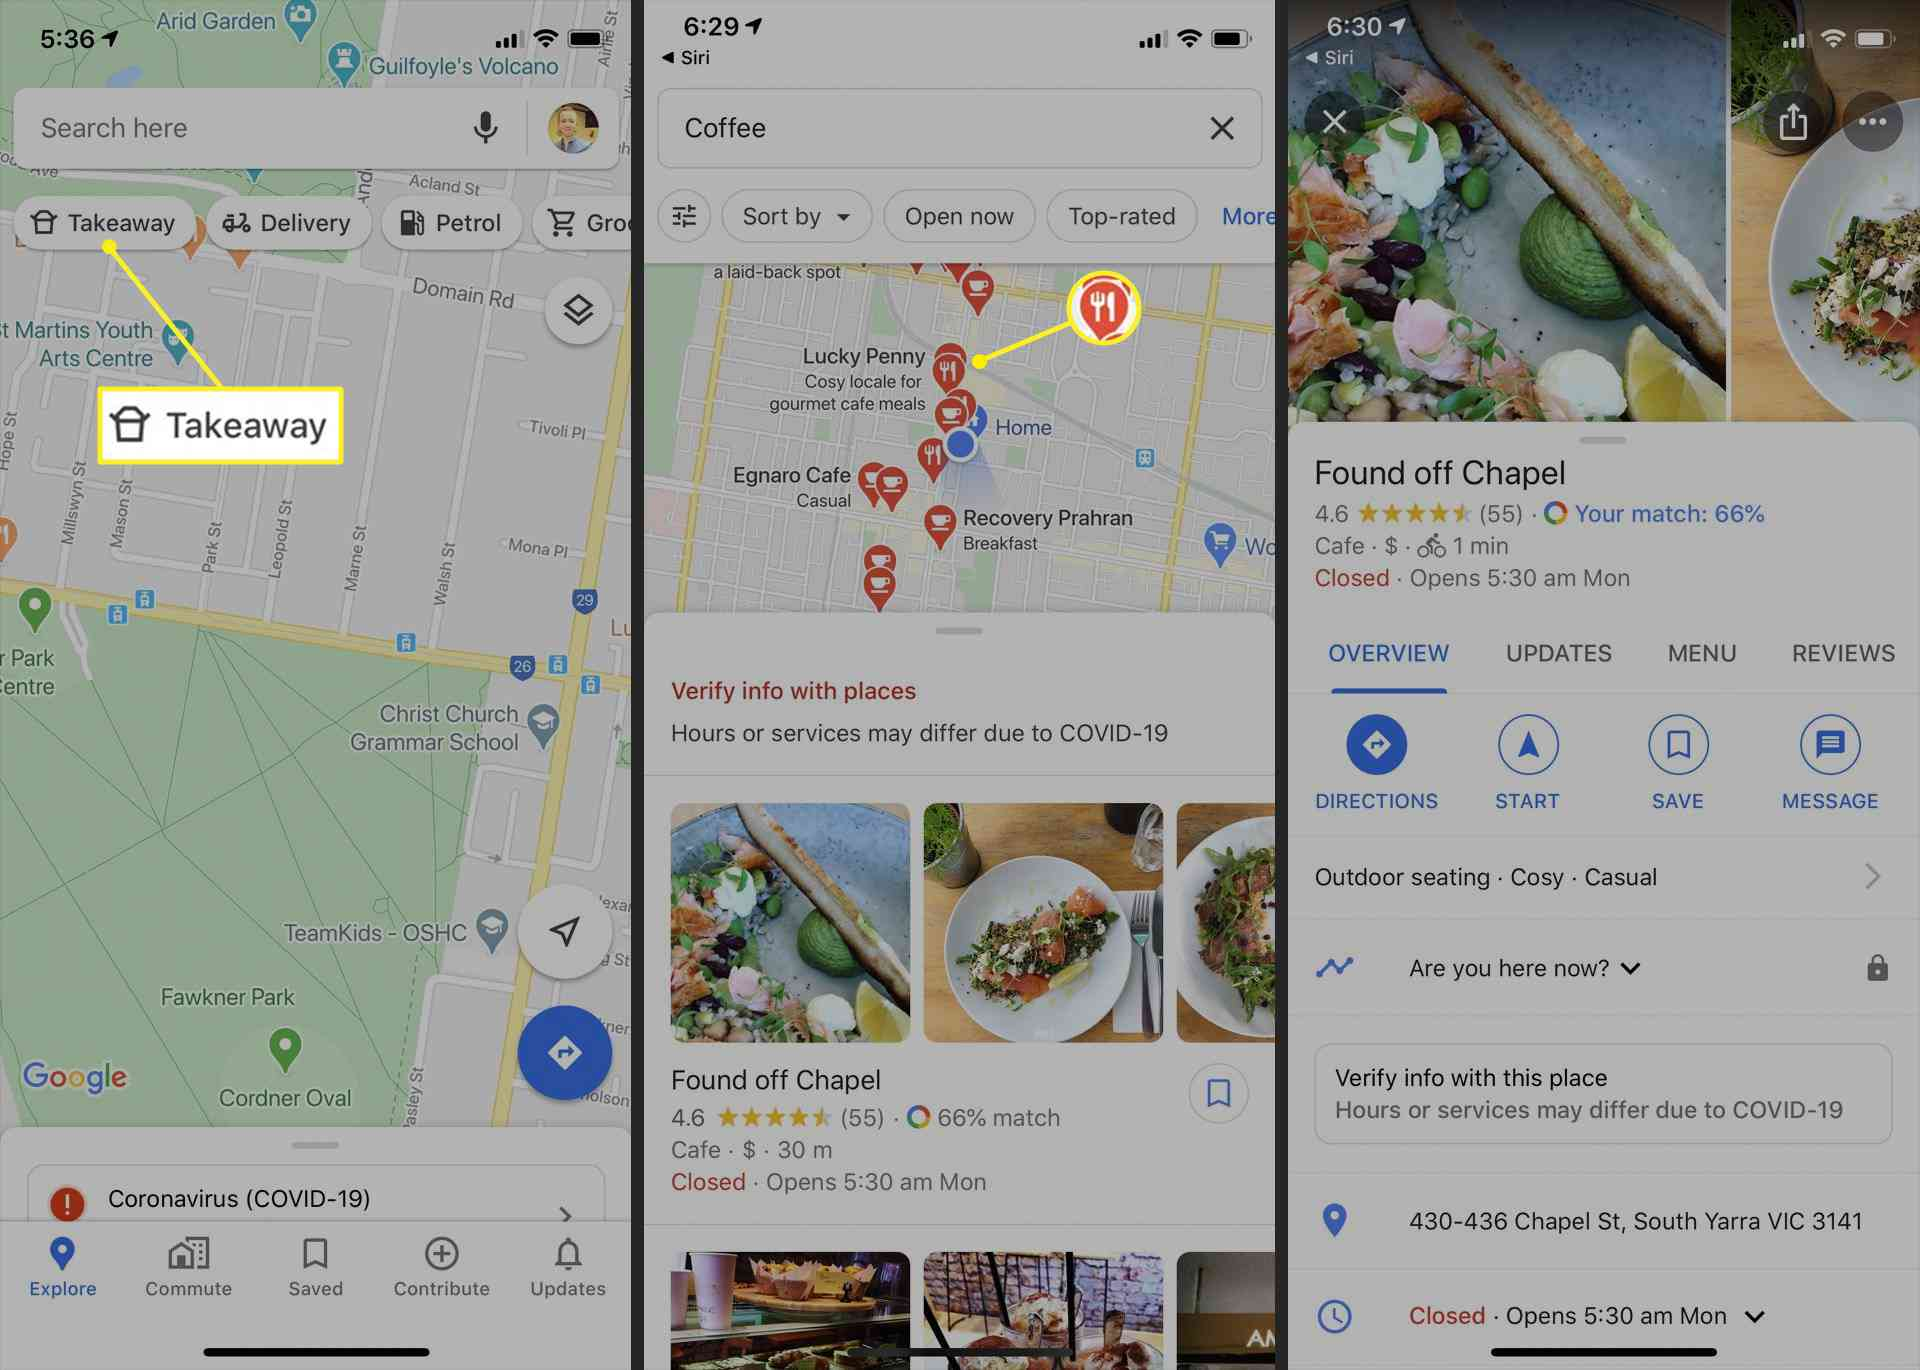 Google Maps restaurant and cafe directory